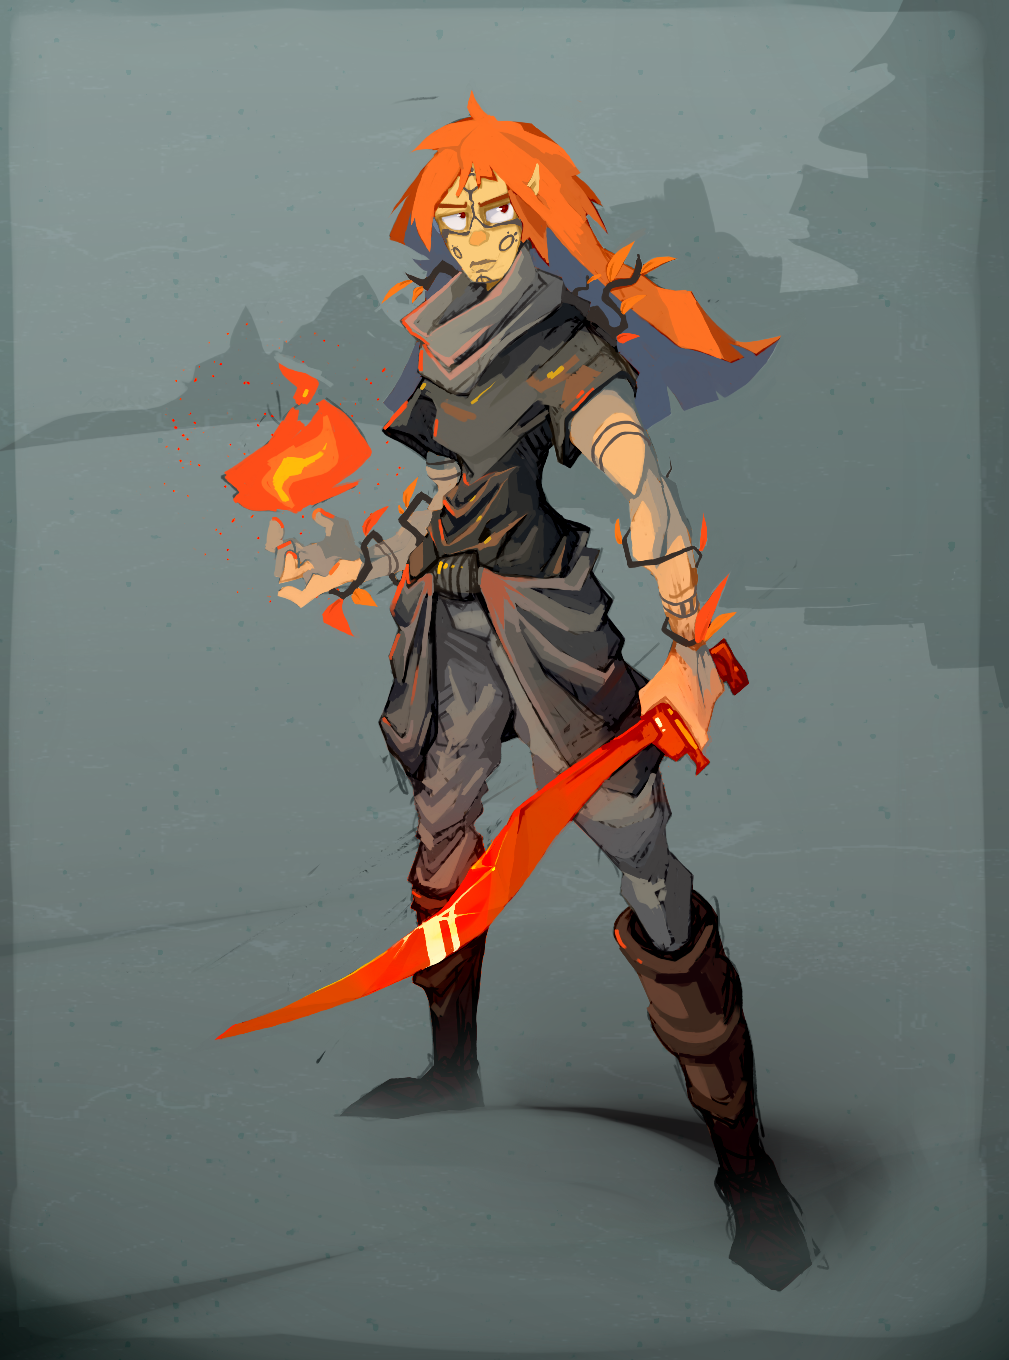 The Druidic Wildfire